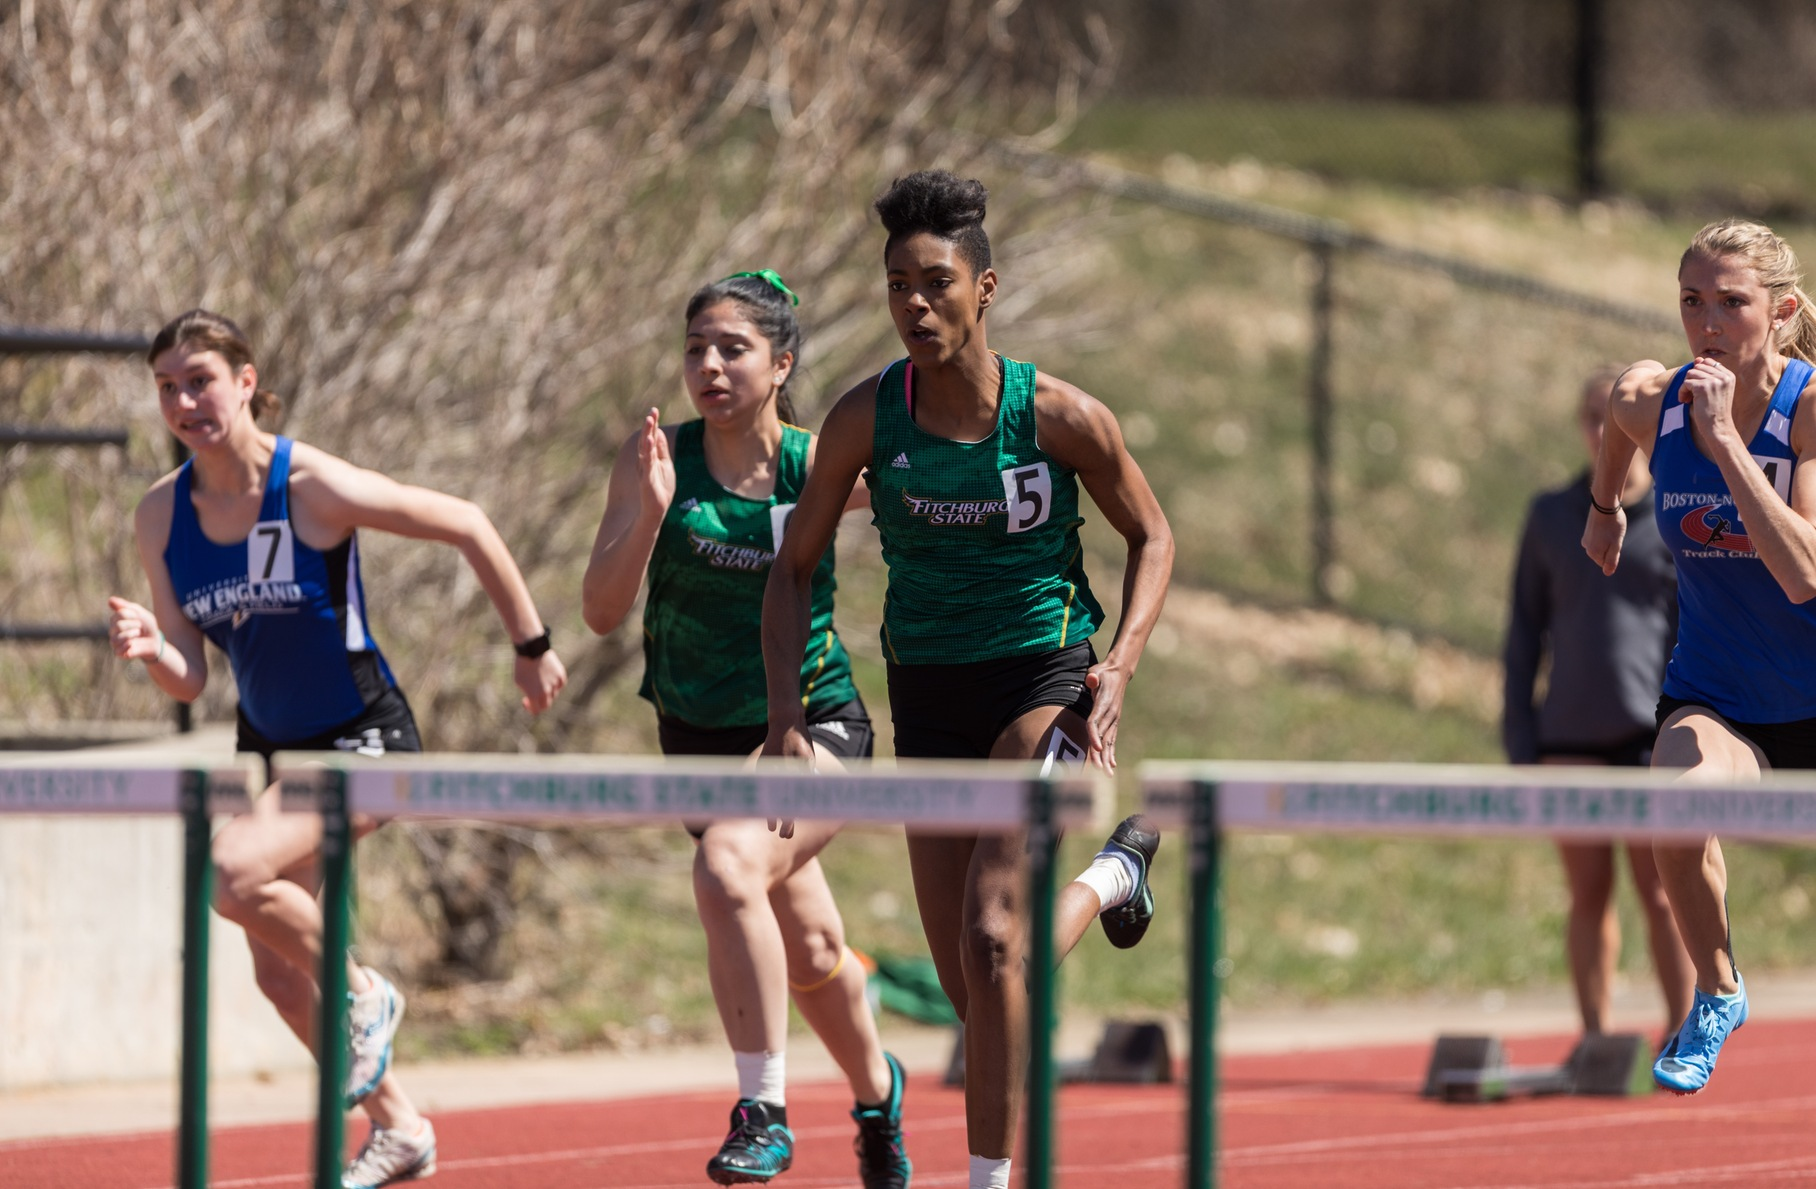 Woolley Garners All-American Accolades At NCAA DIII Outdoor Track & Field National Championships